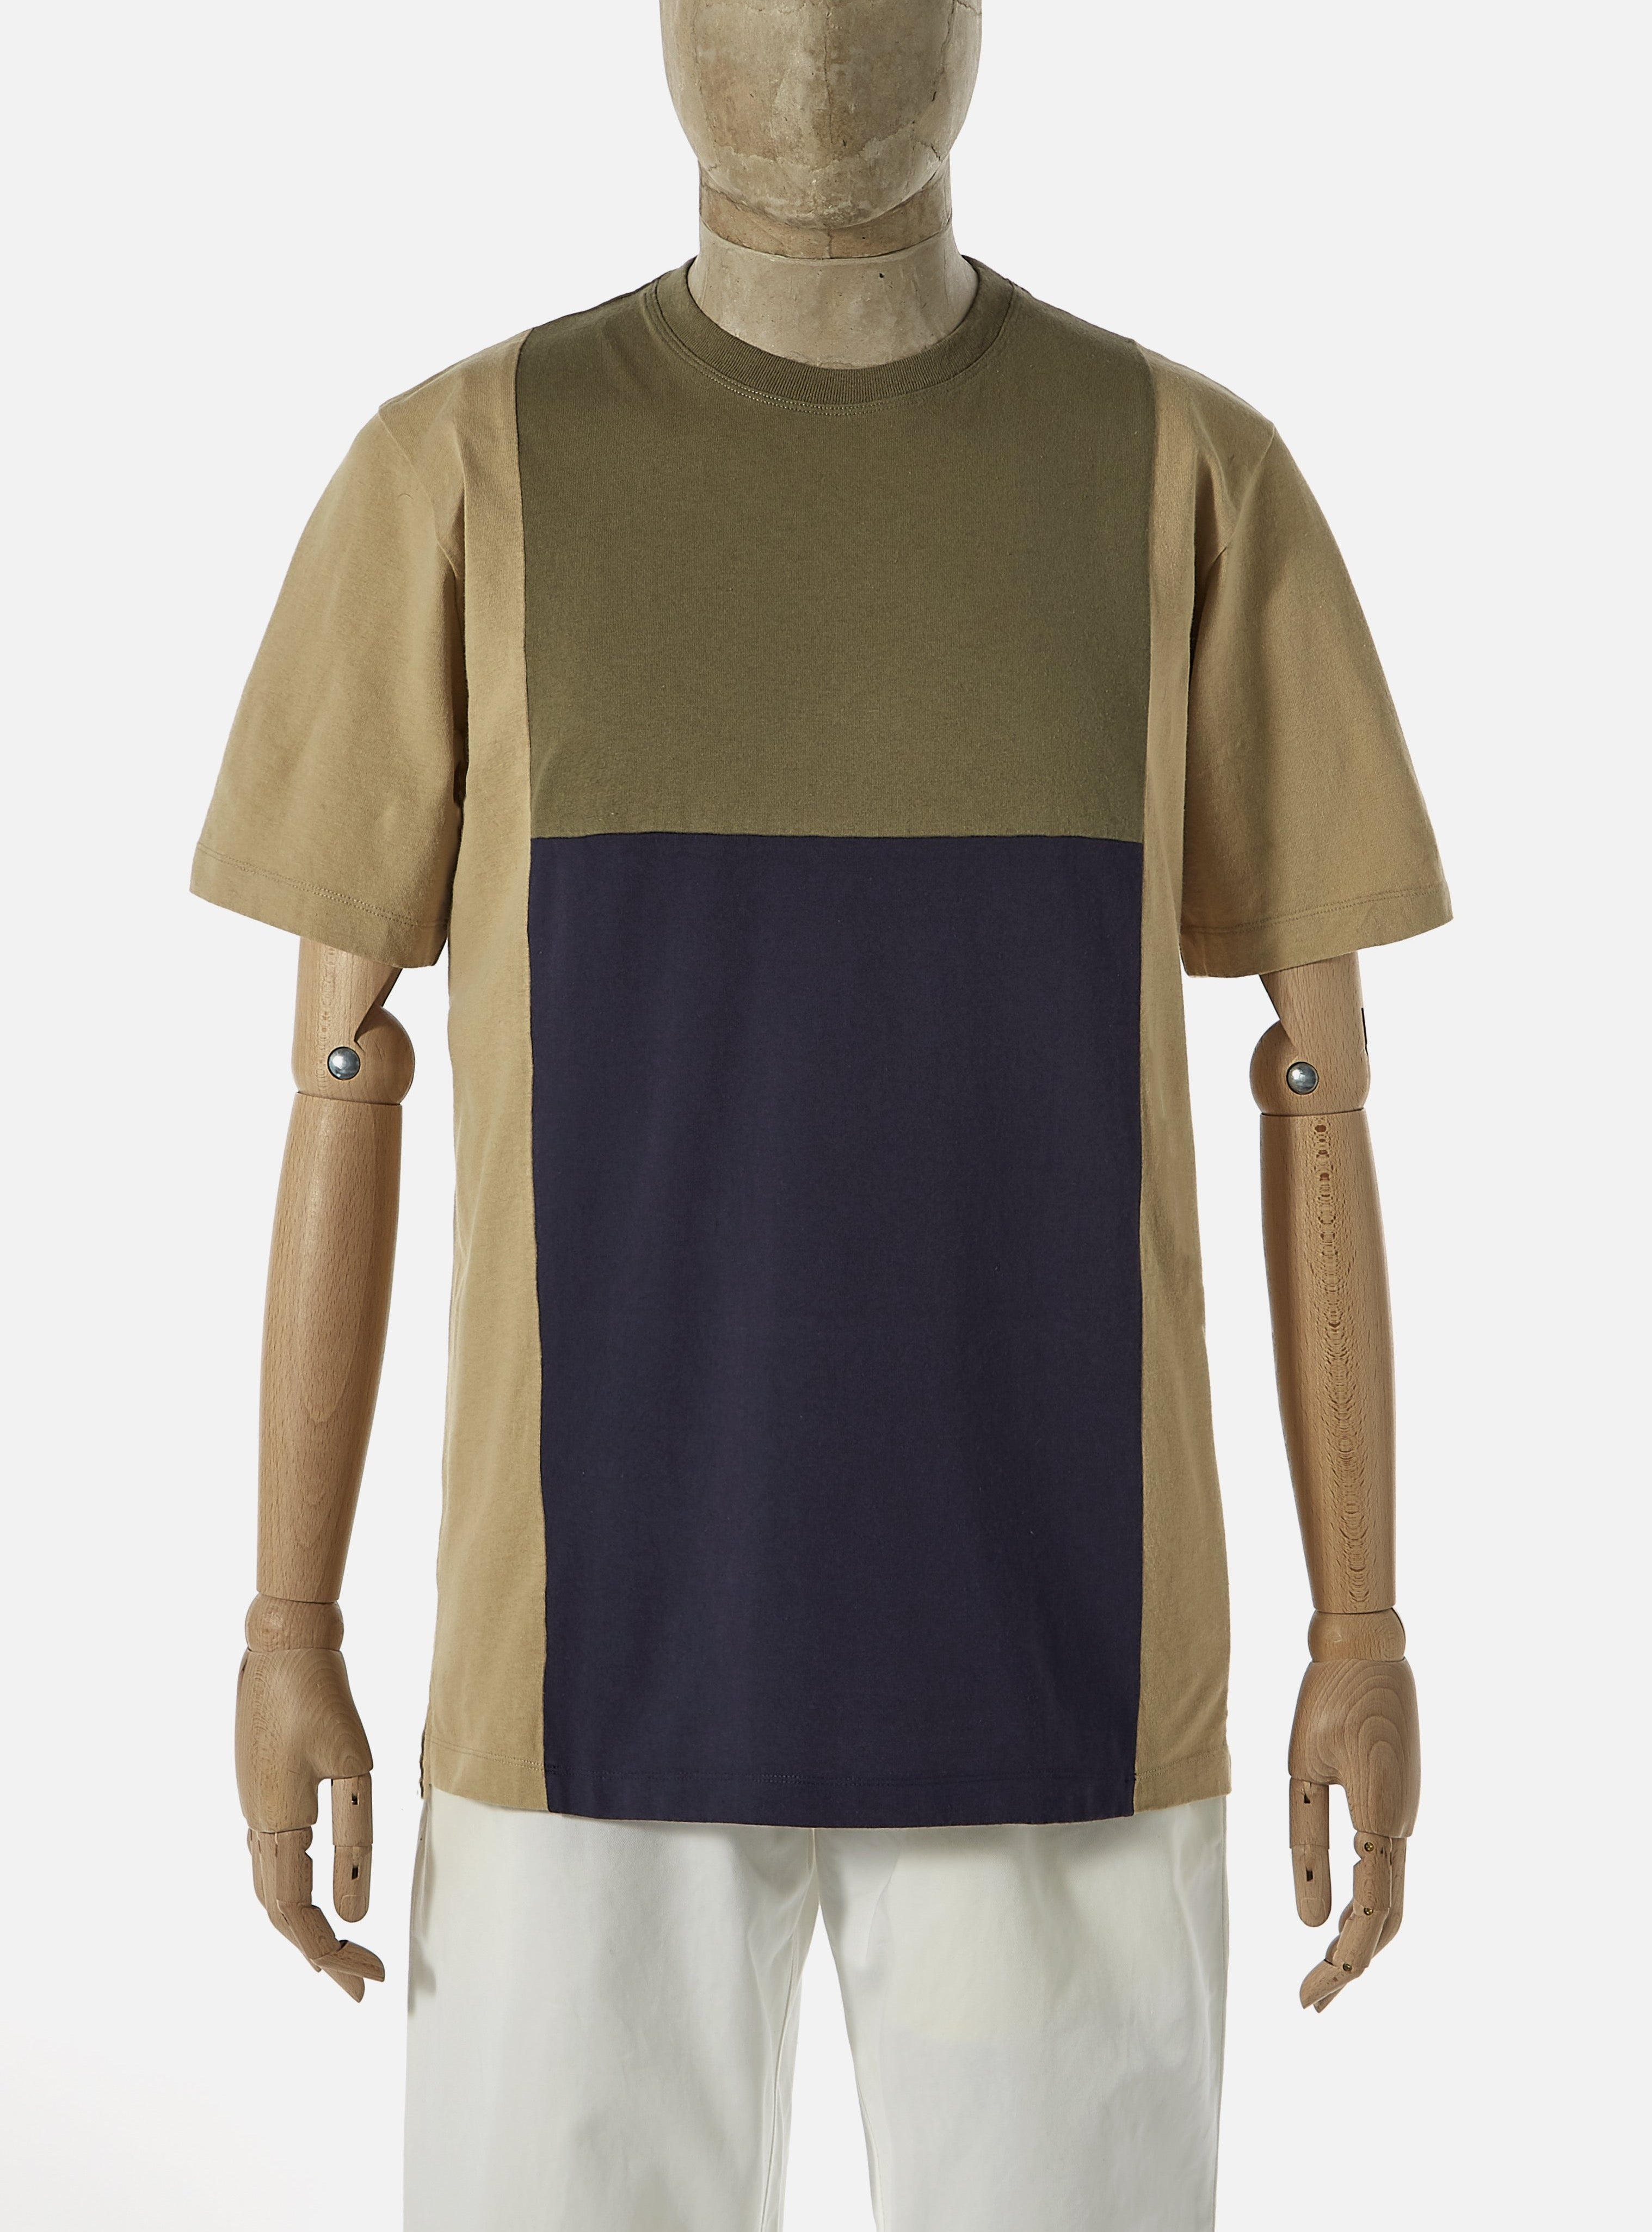 Universal Works 'Save That Jersey' Panel Tee in Olive Mixed